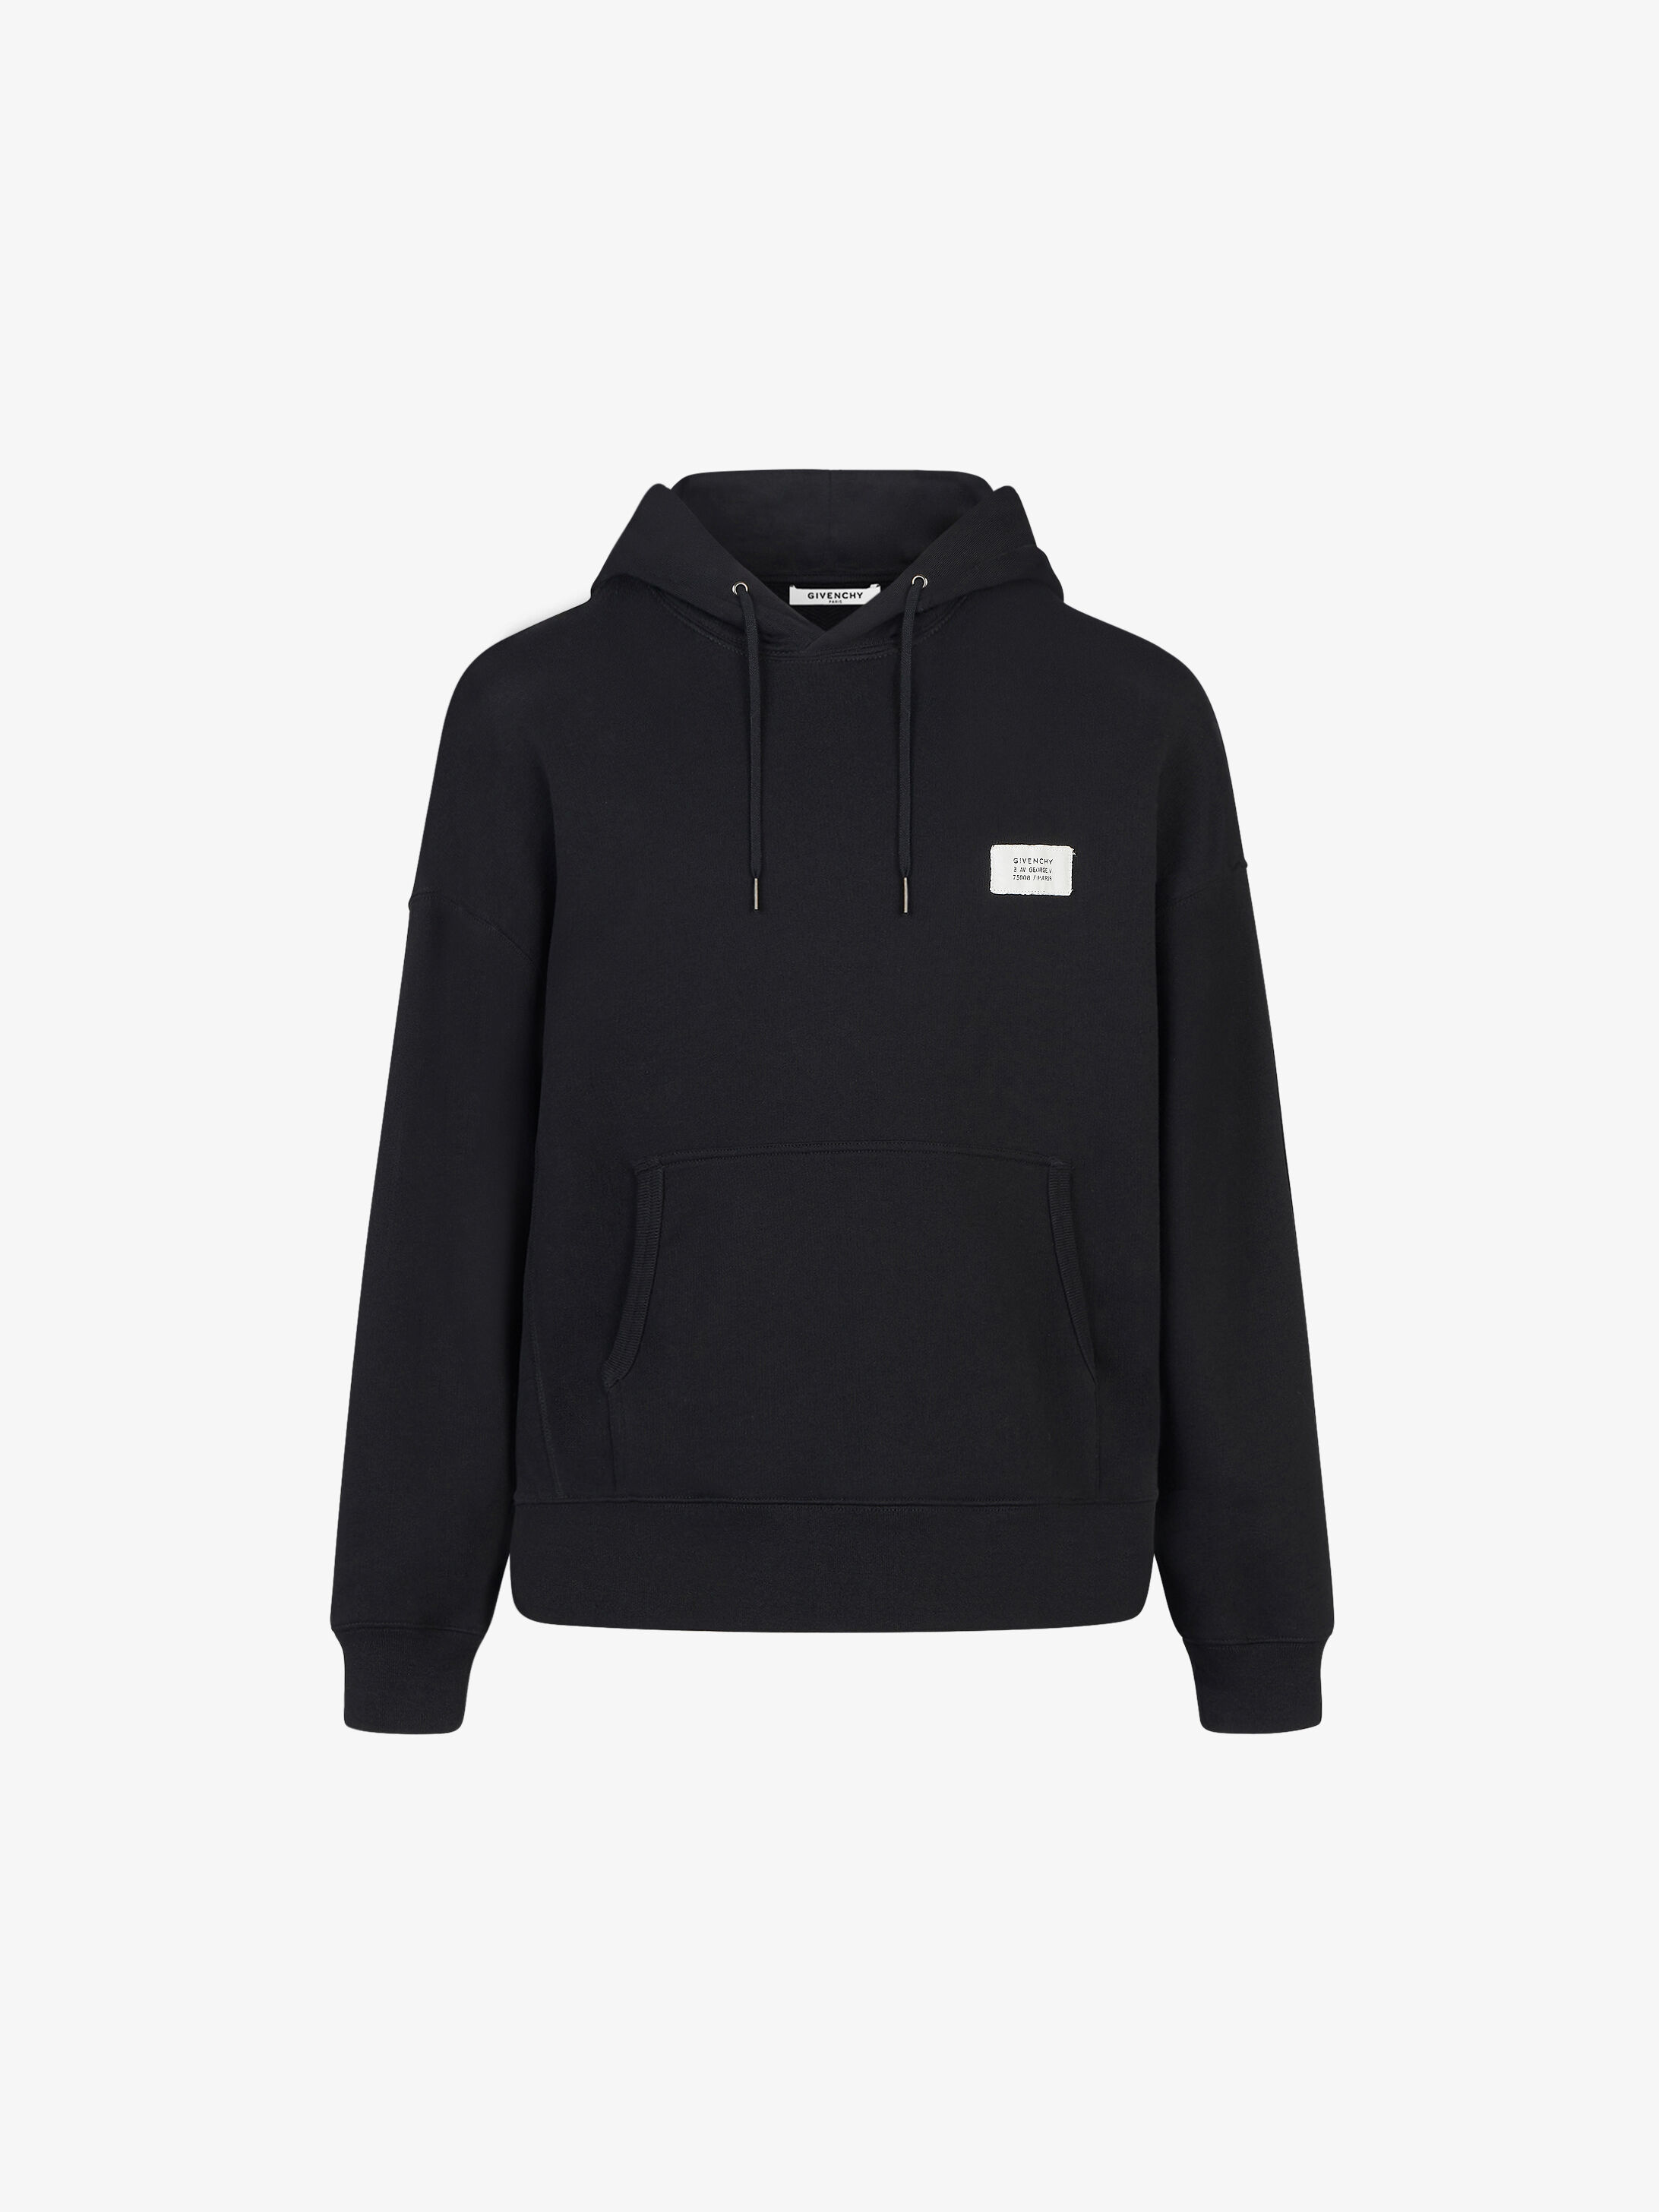 8aea9c6ffee4 Men s Sweatshirts collection by Givenchy.